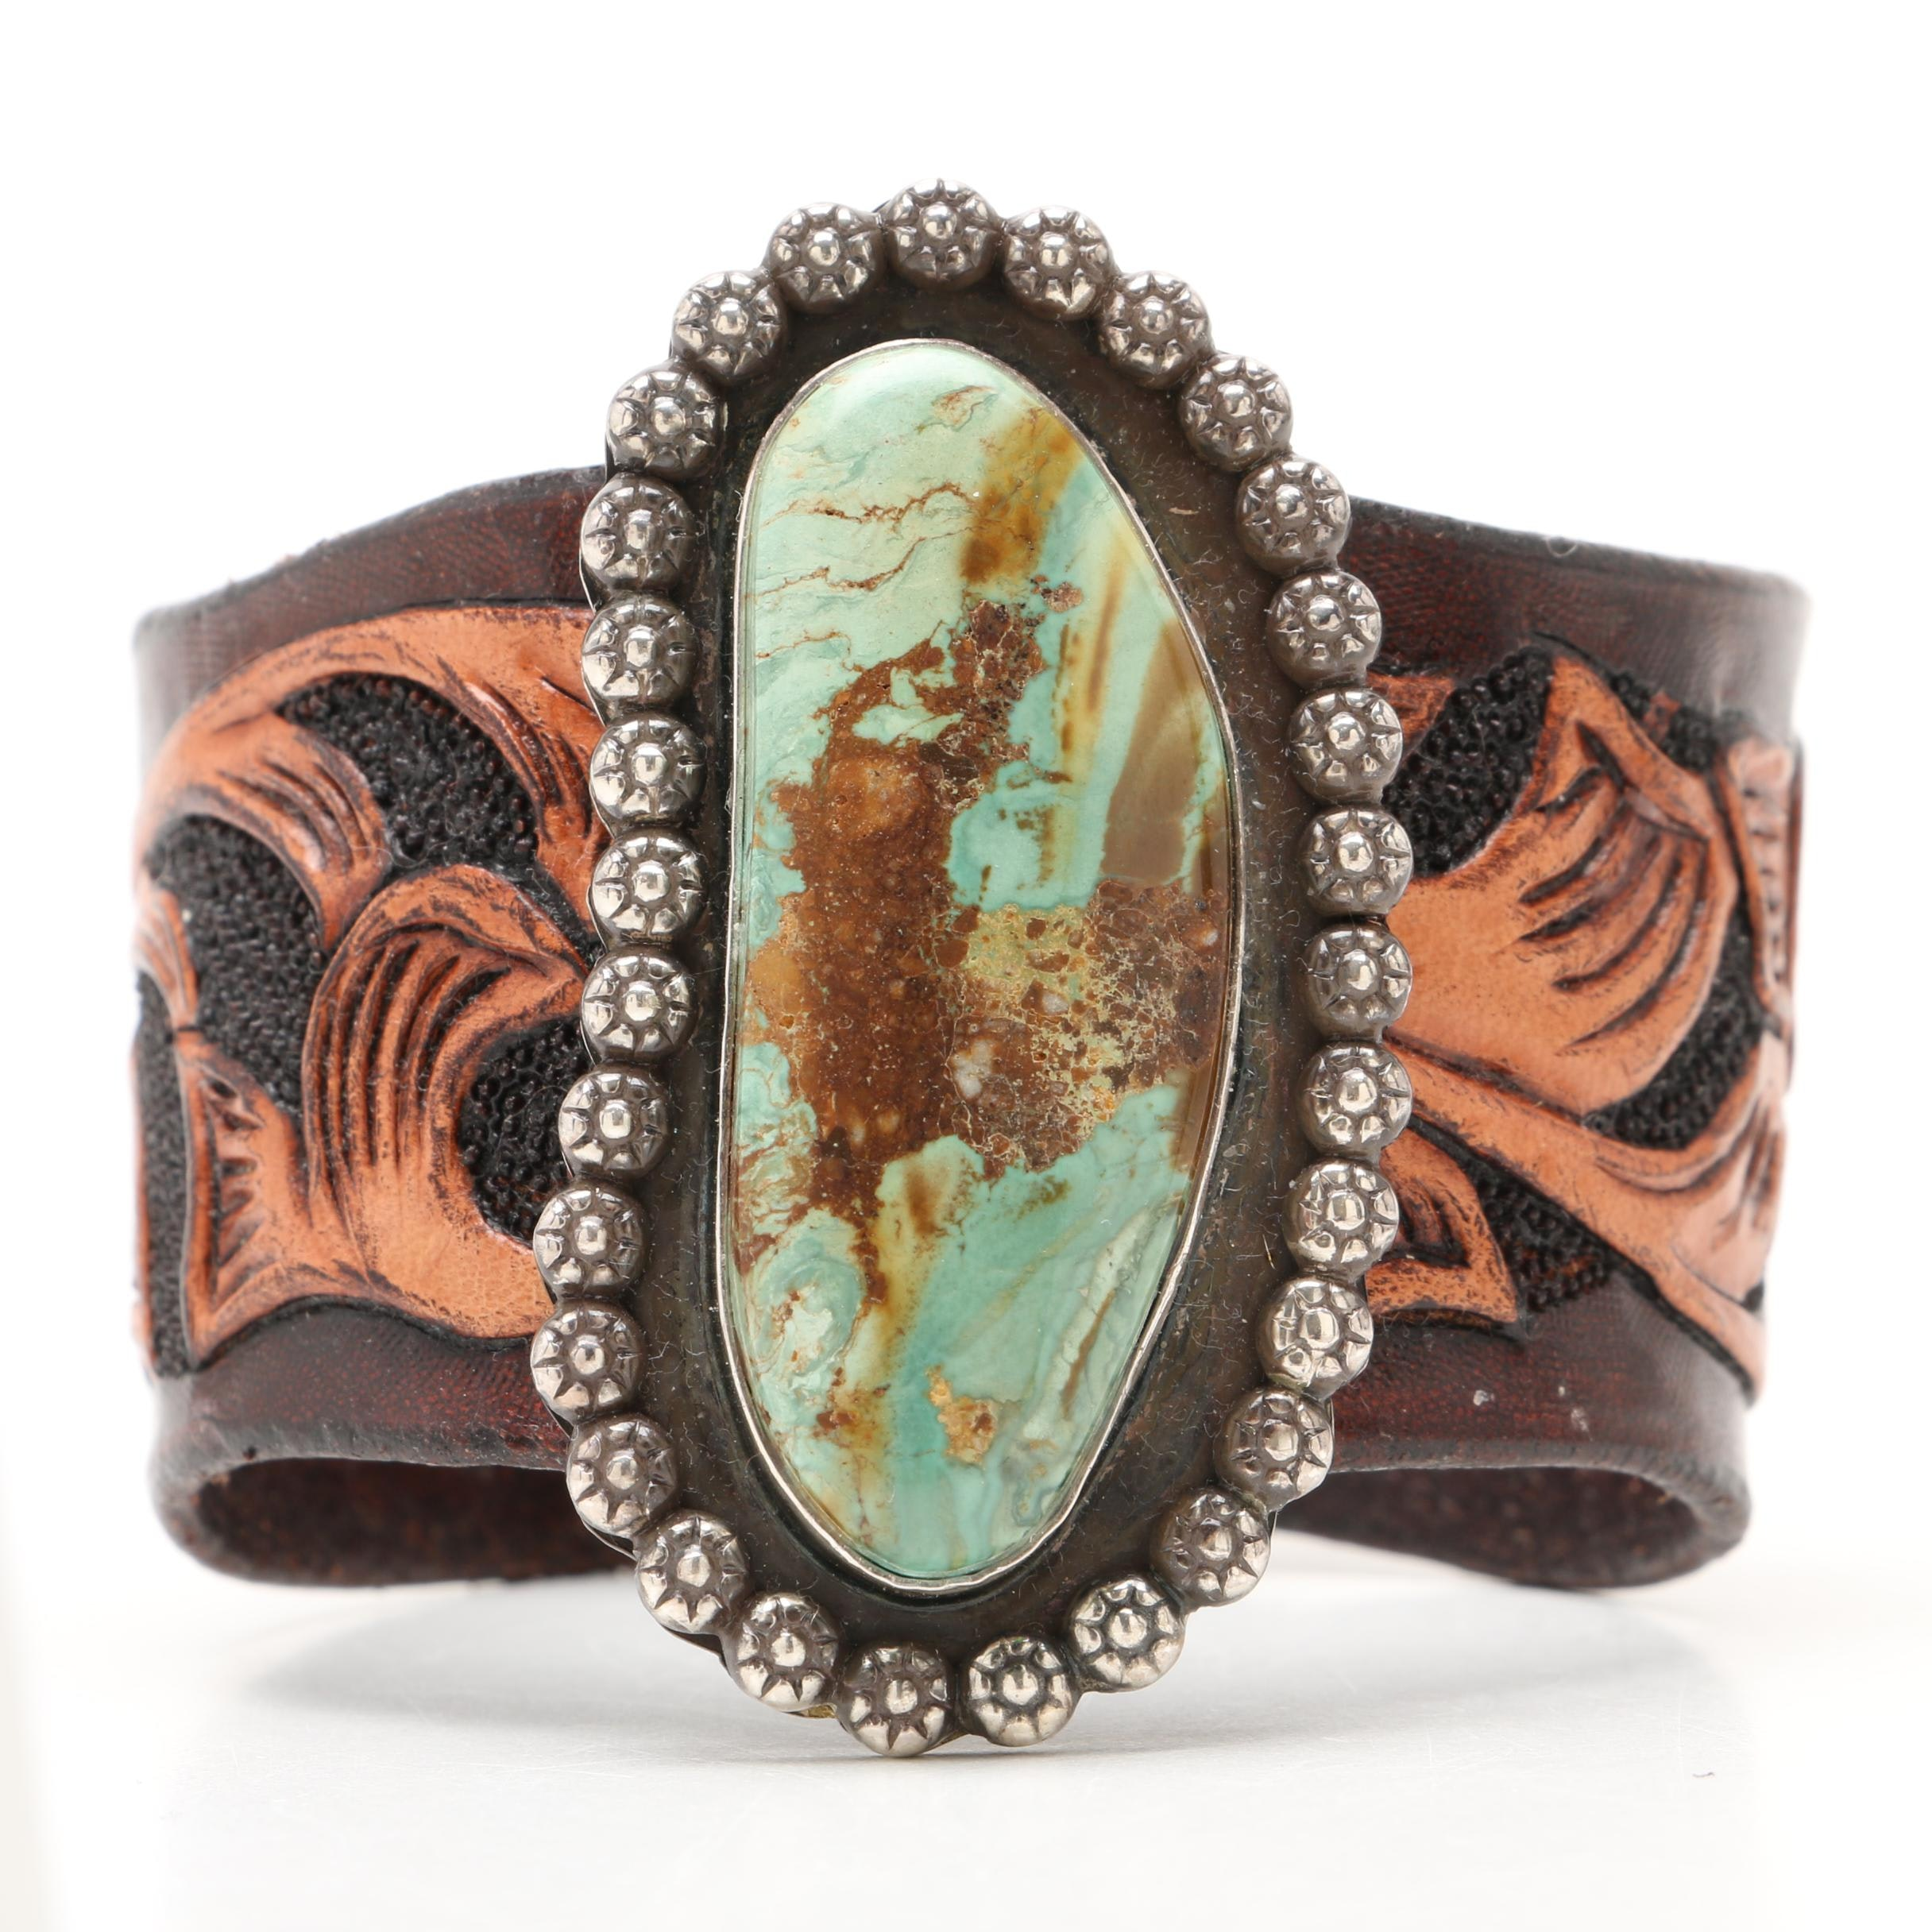 Southwestern Sterling Silver and Hand Tooled Leather with Turquoise Bracelet